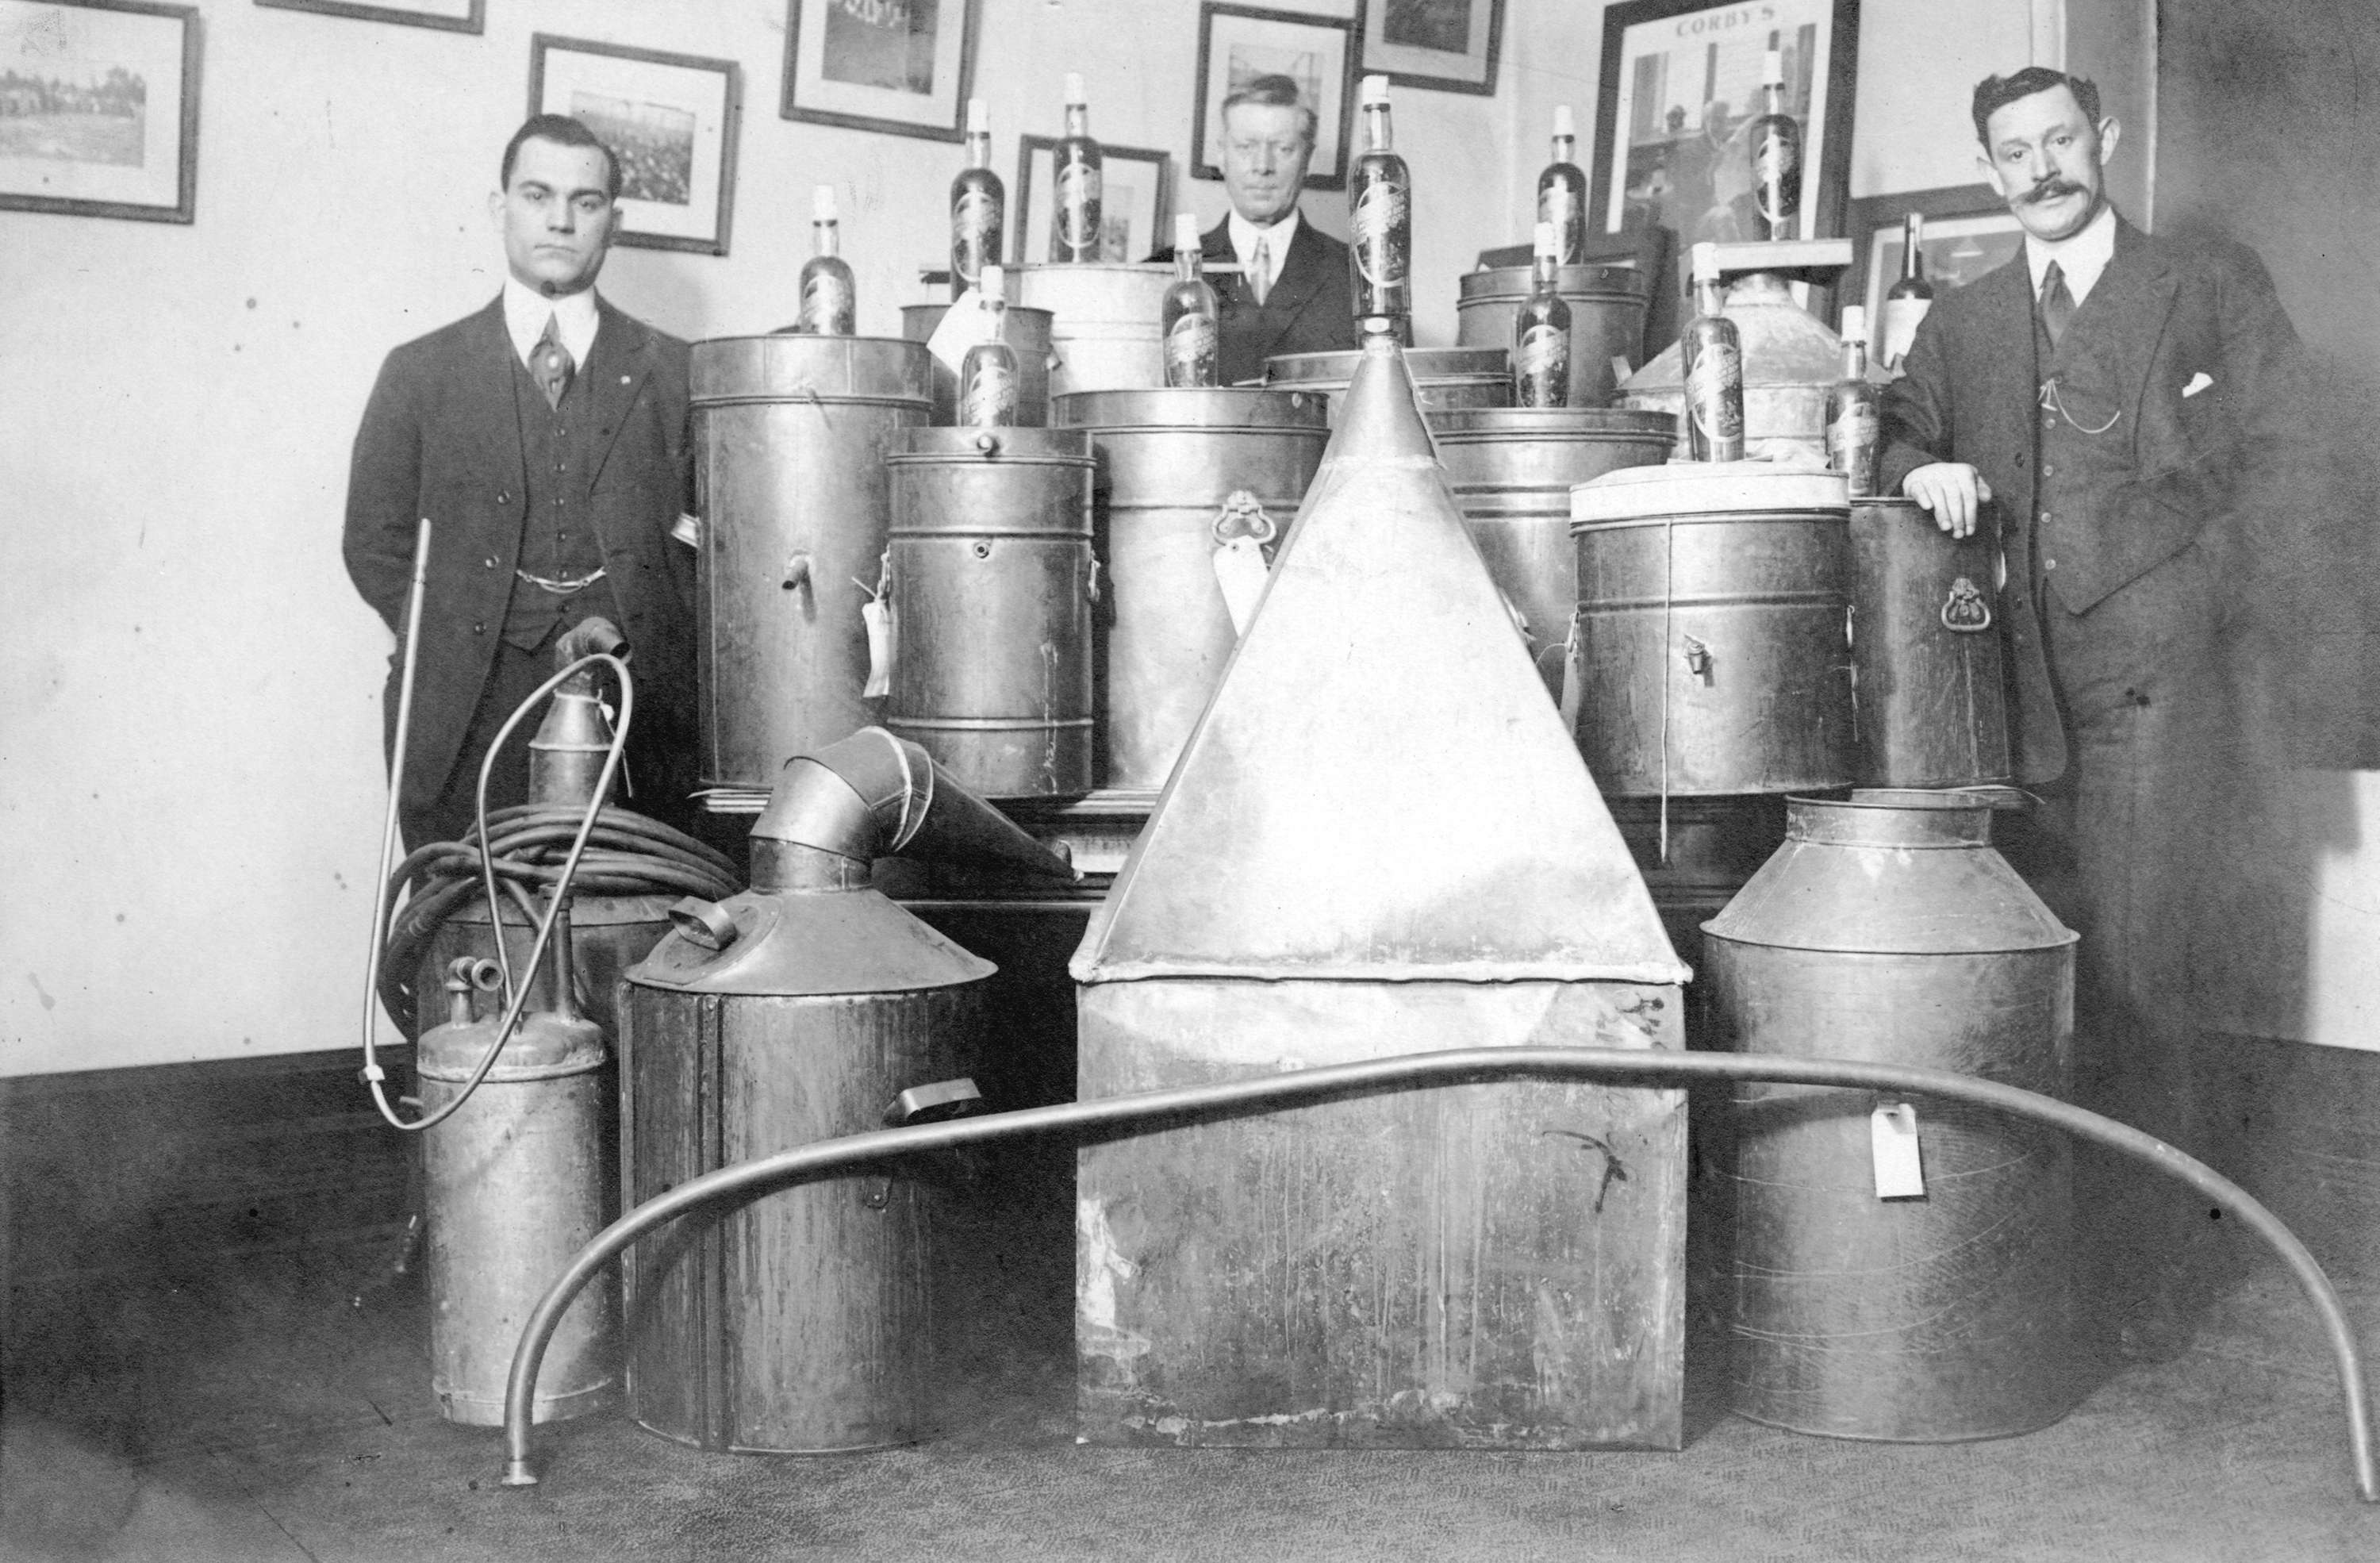 Three men pose with a dozen metal stills.